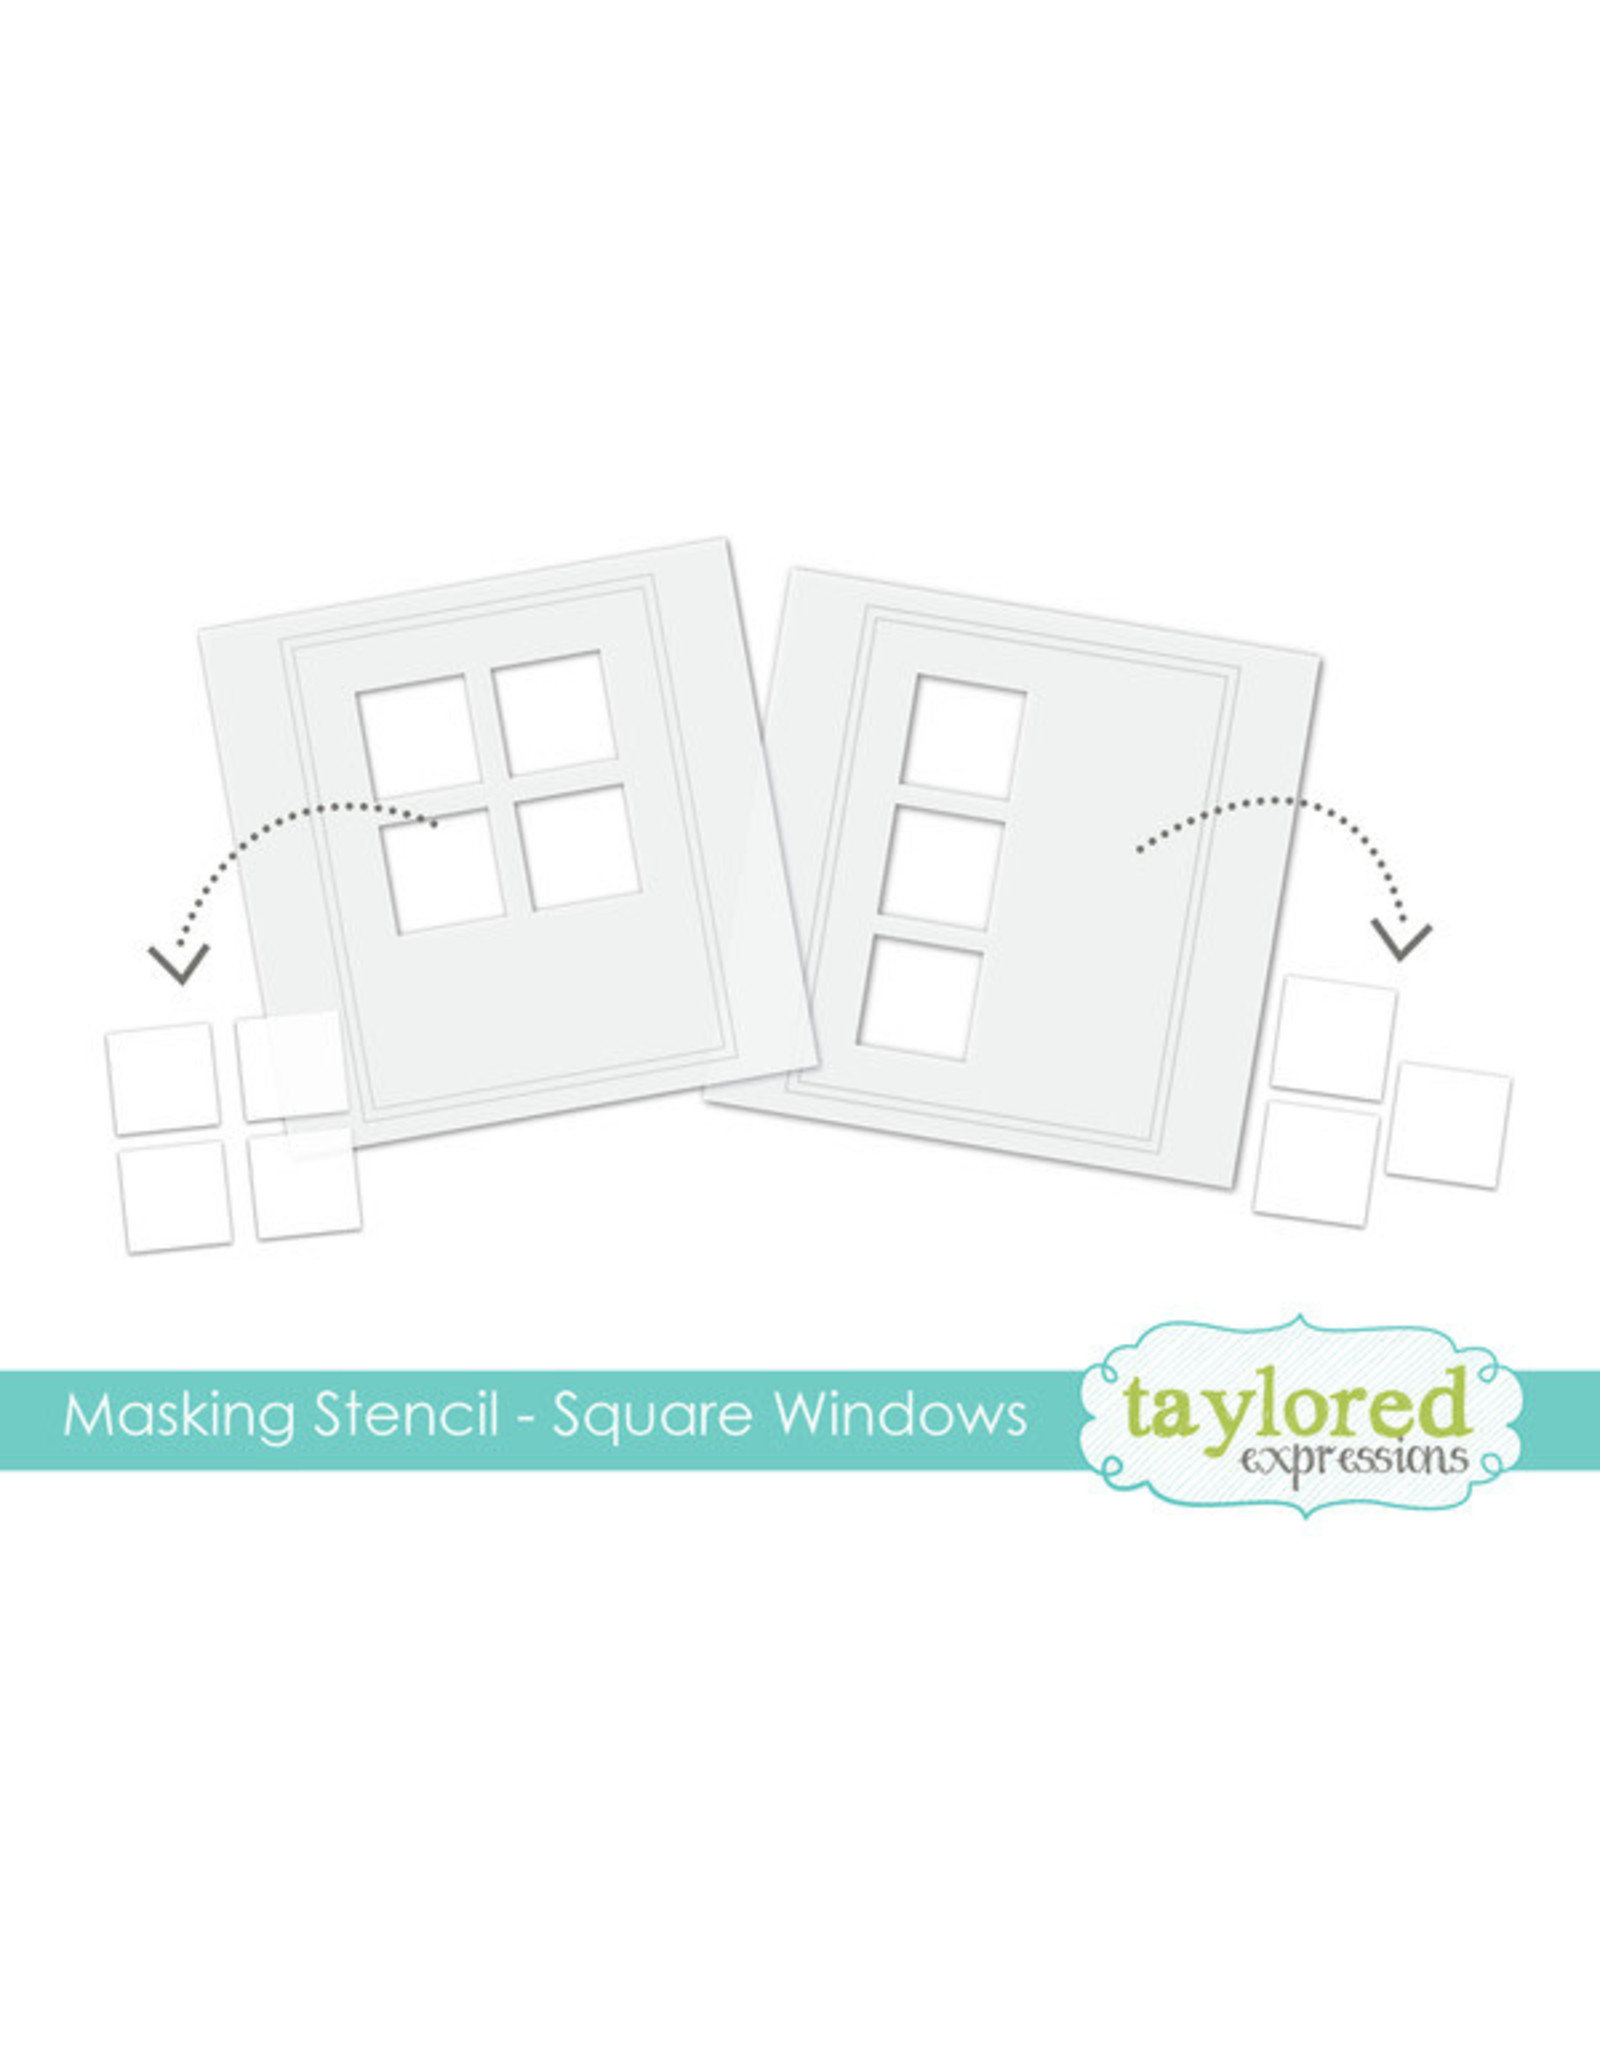 Square Windows - 6x6 Designer Masking Stencil